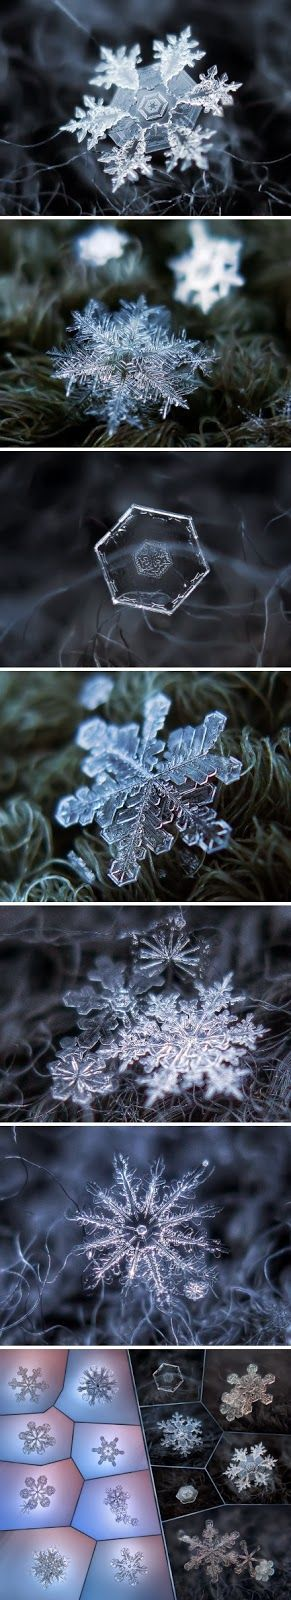 Russian photographer Alexey Kljatov has created an ingenious and inexpensive DIY camera rig capable of capturing excellent close-up pictures of snowflakes.